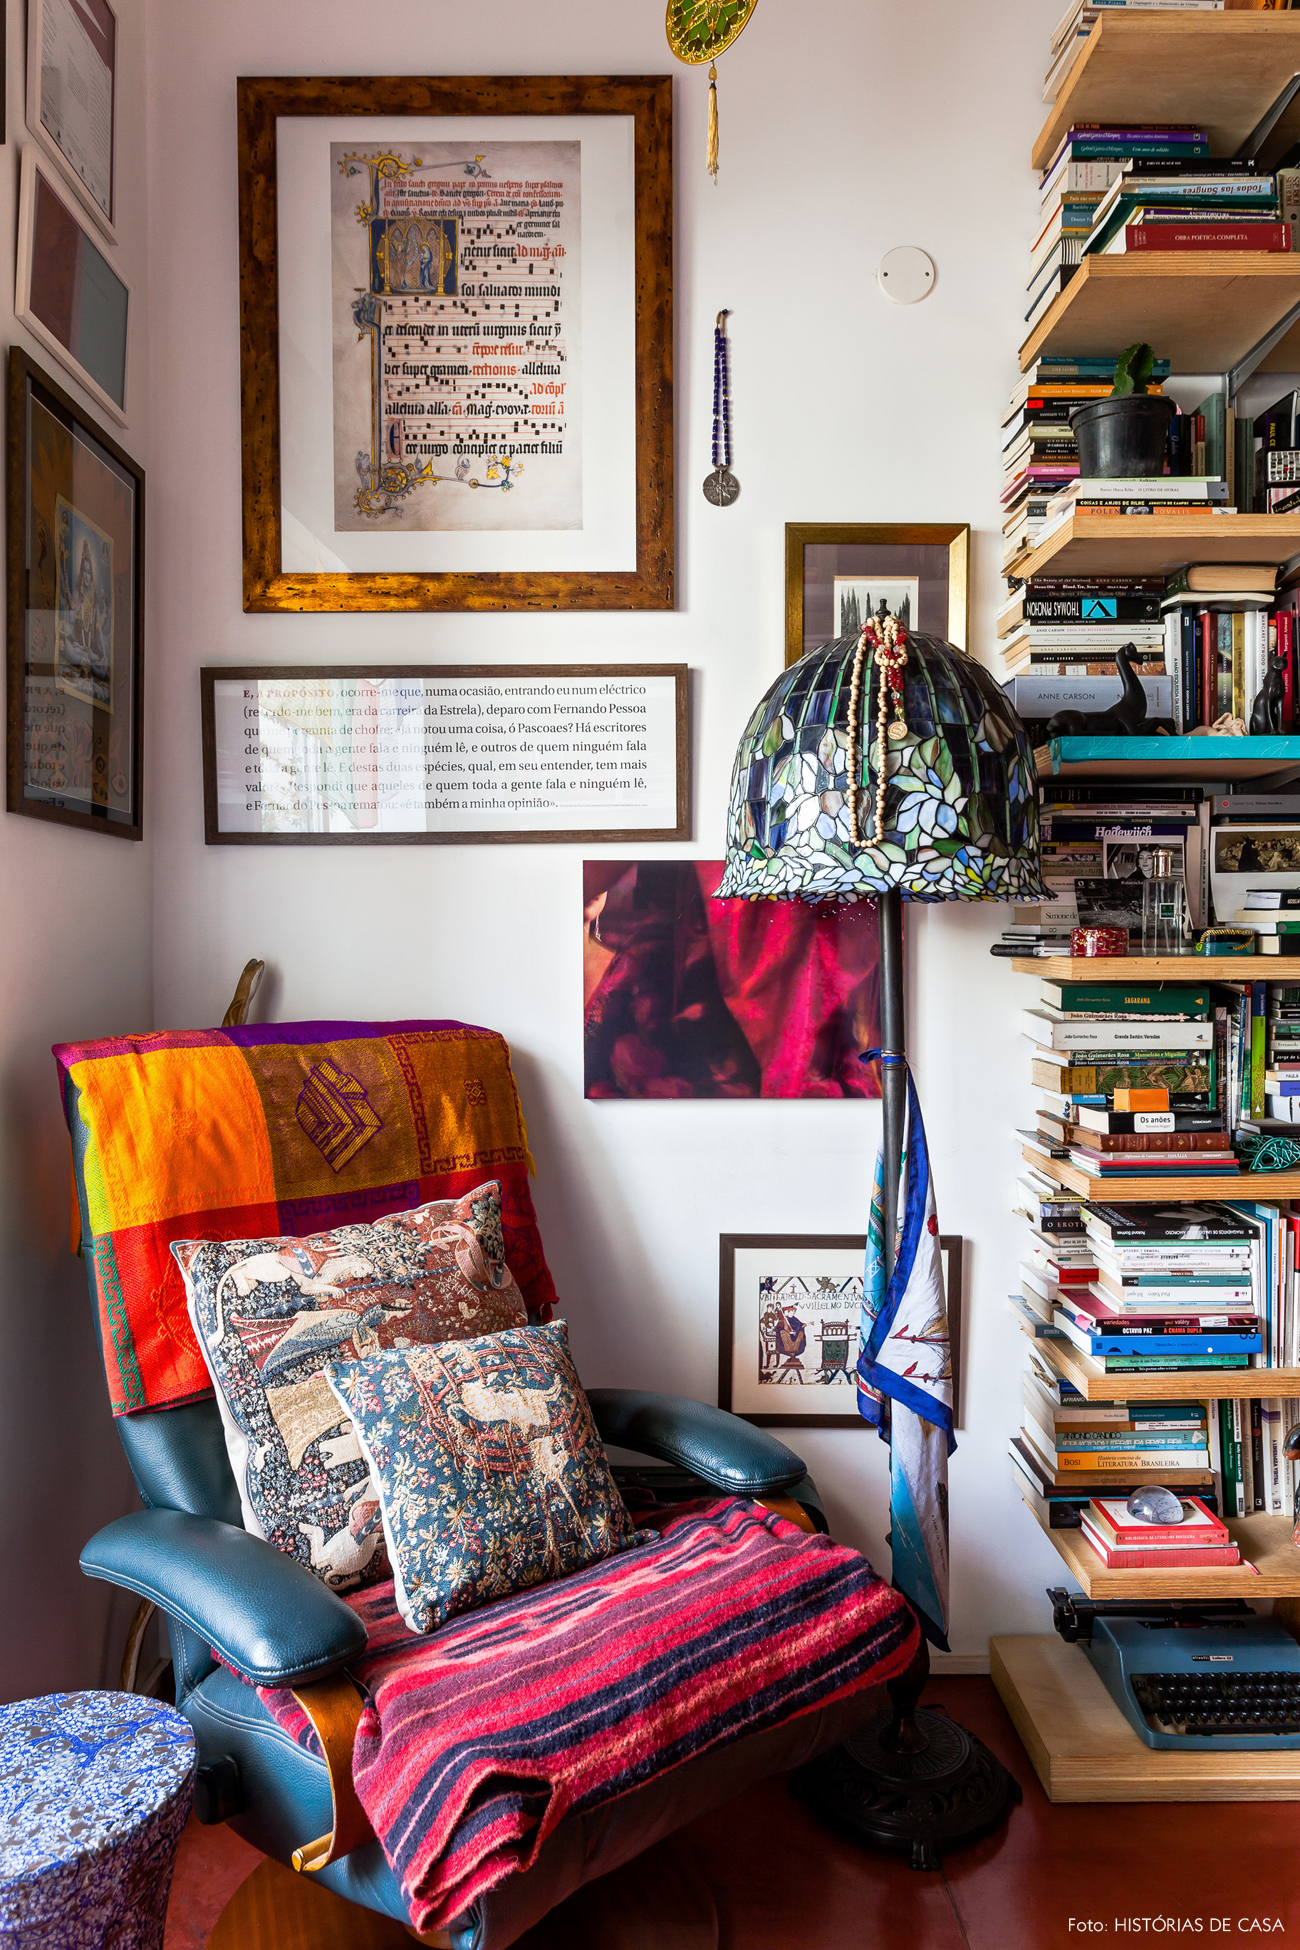 32-decoracao-escritorio-home-office-livros-poltrona-antiga